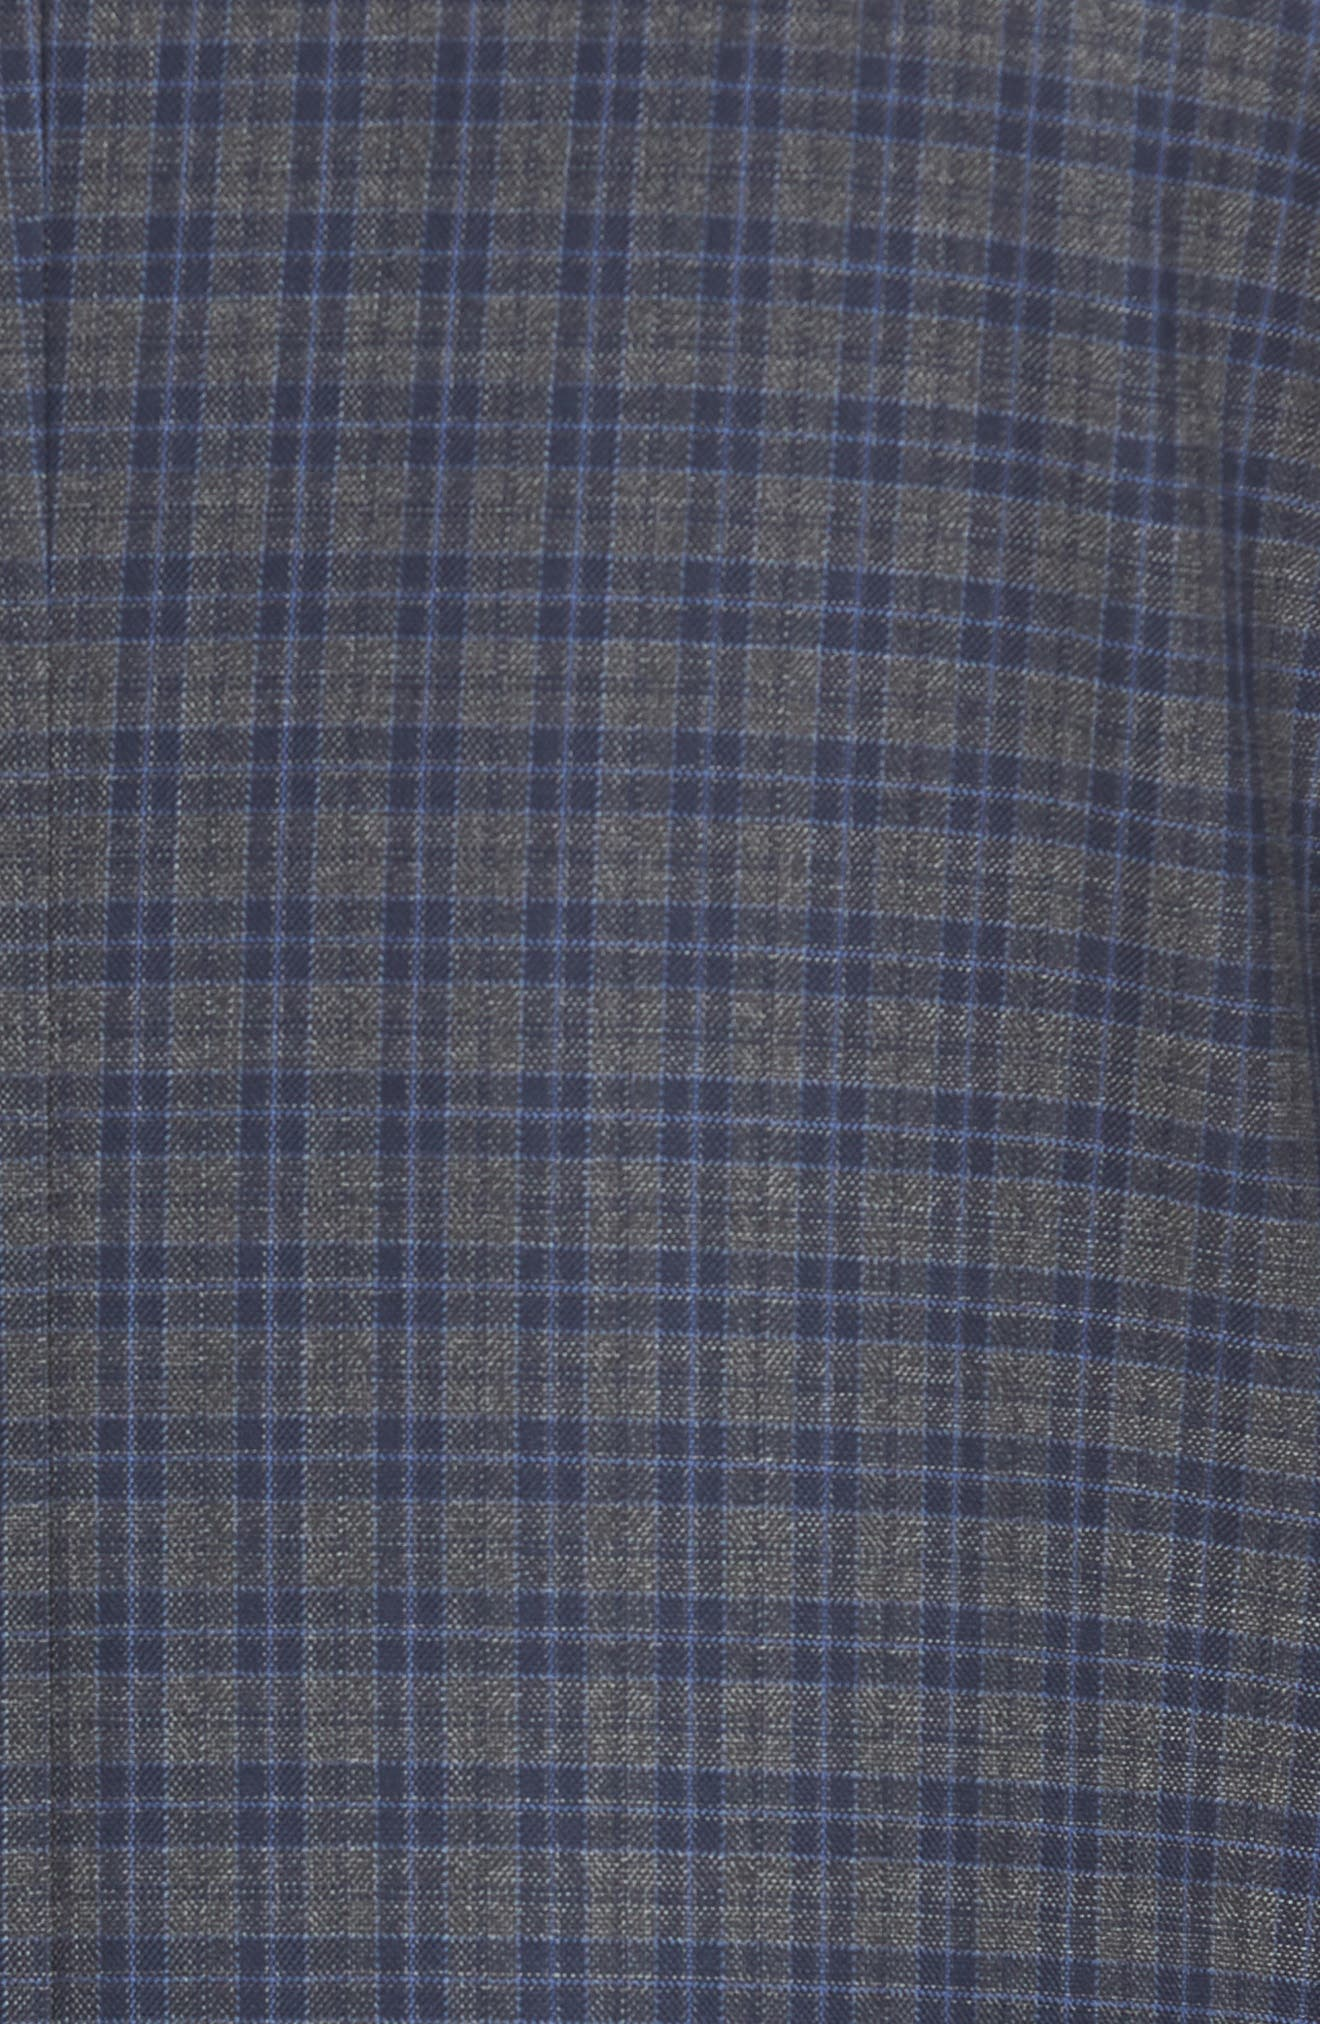 Classic Fit Check Wool Sport Coat,                             Alternate thumbnail 6, color,                             020